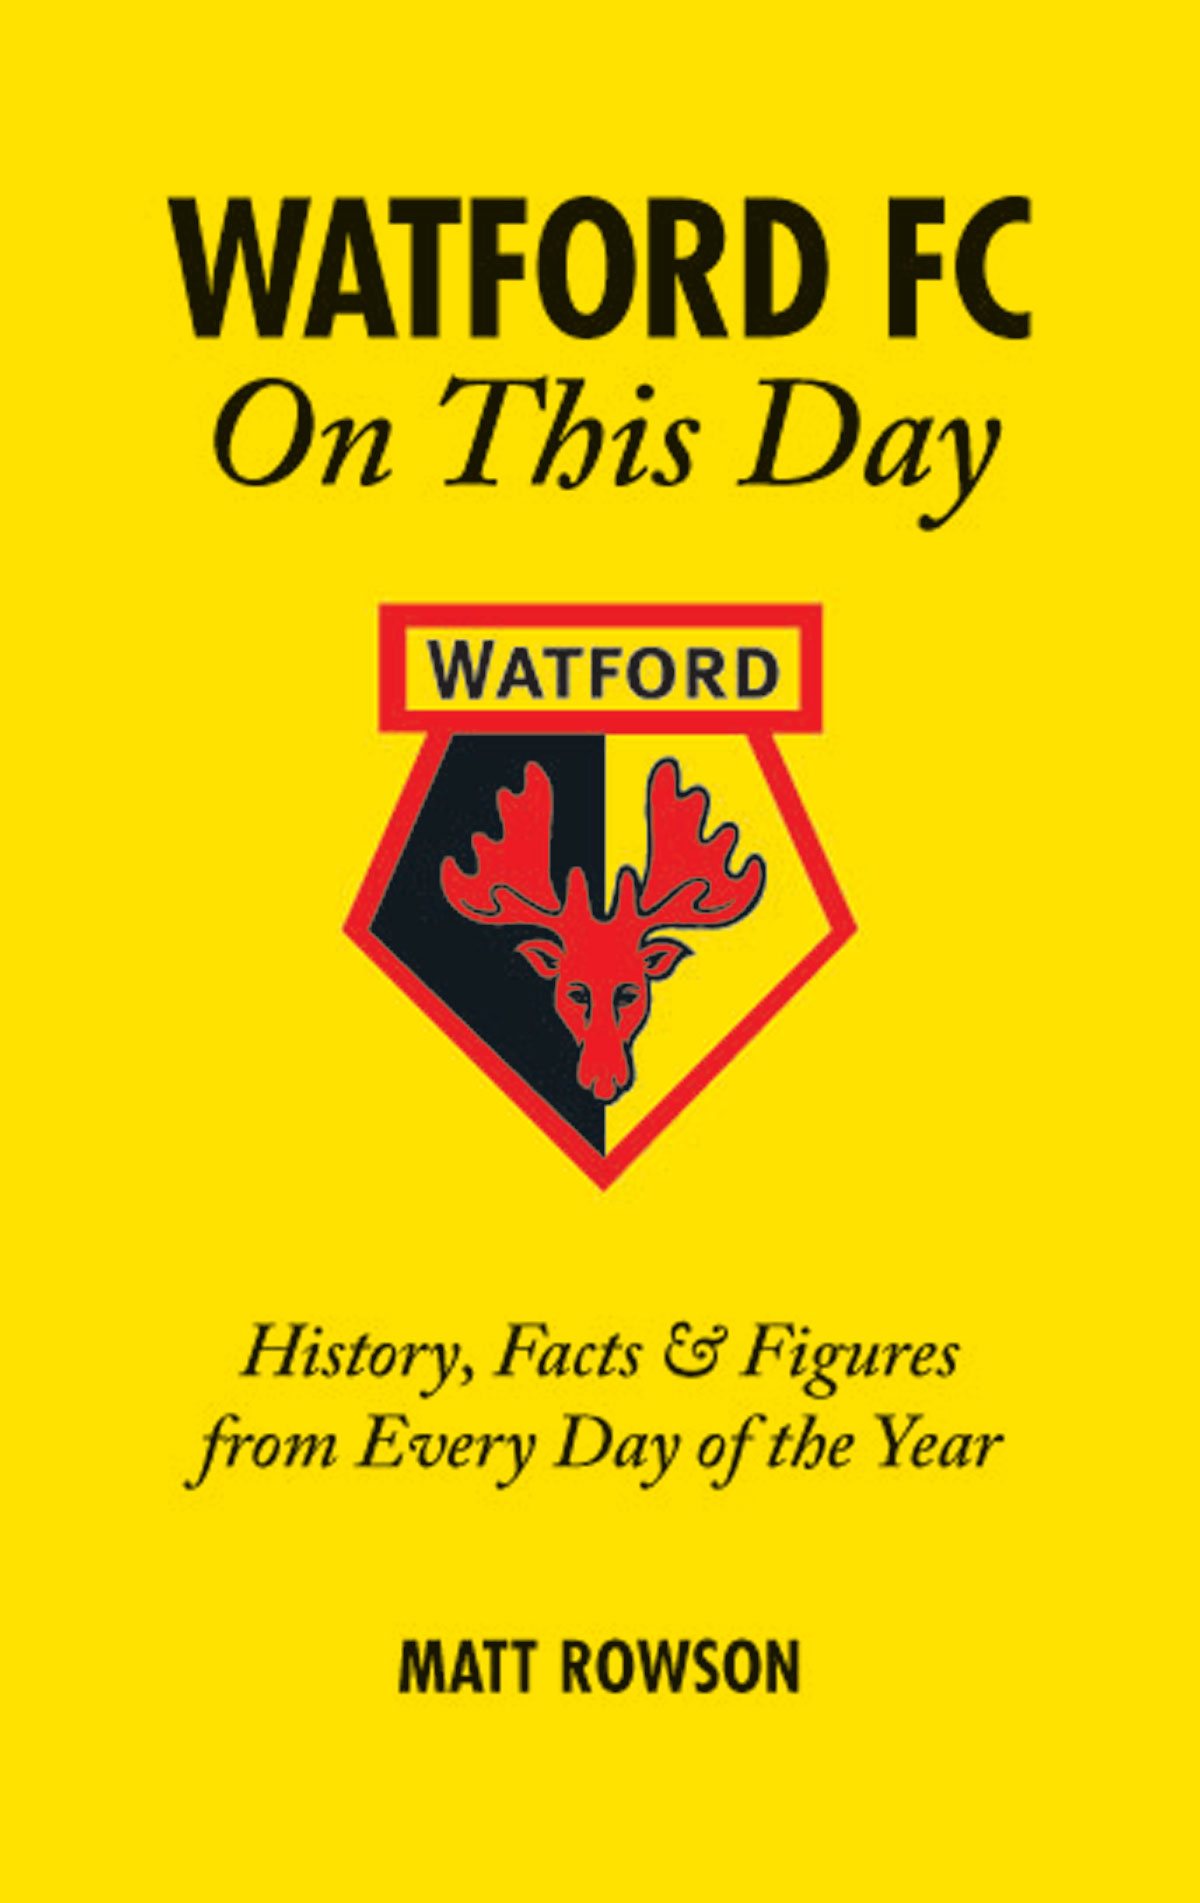 On this date in Watford FC's history